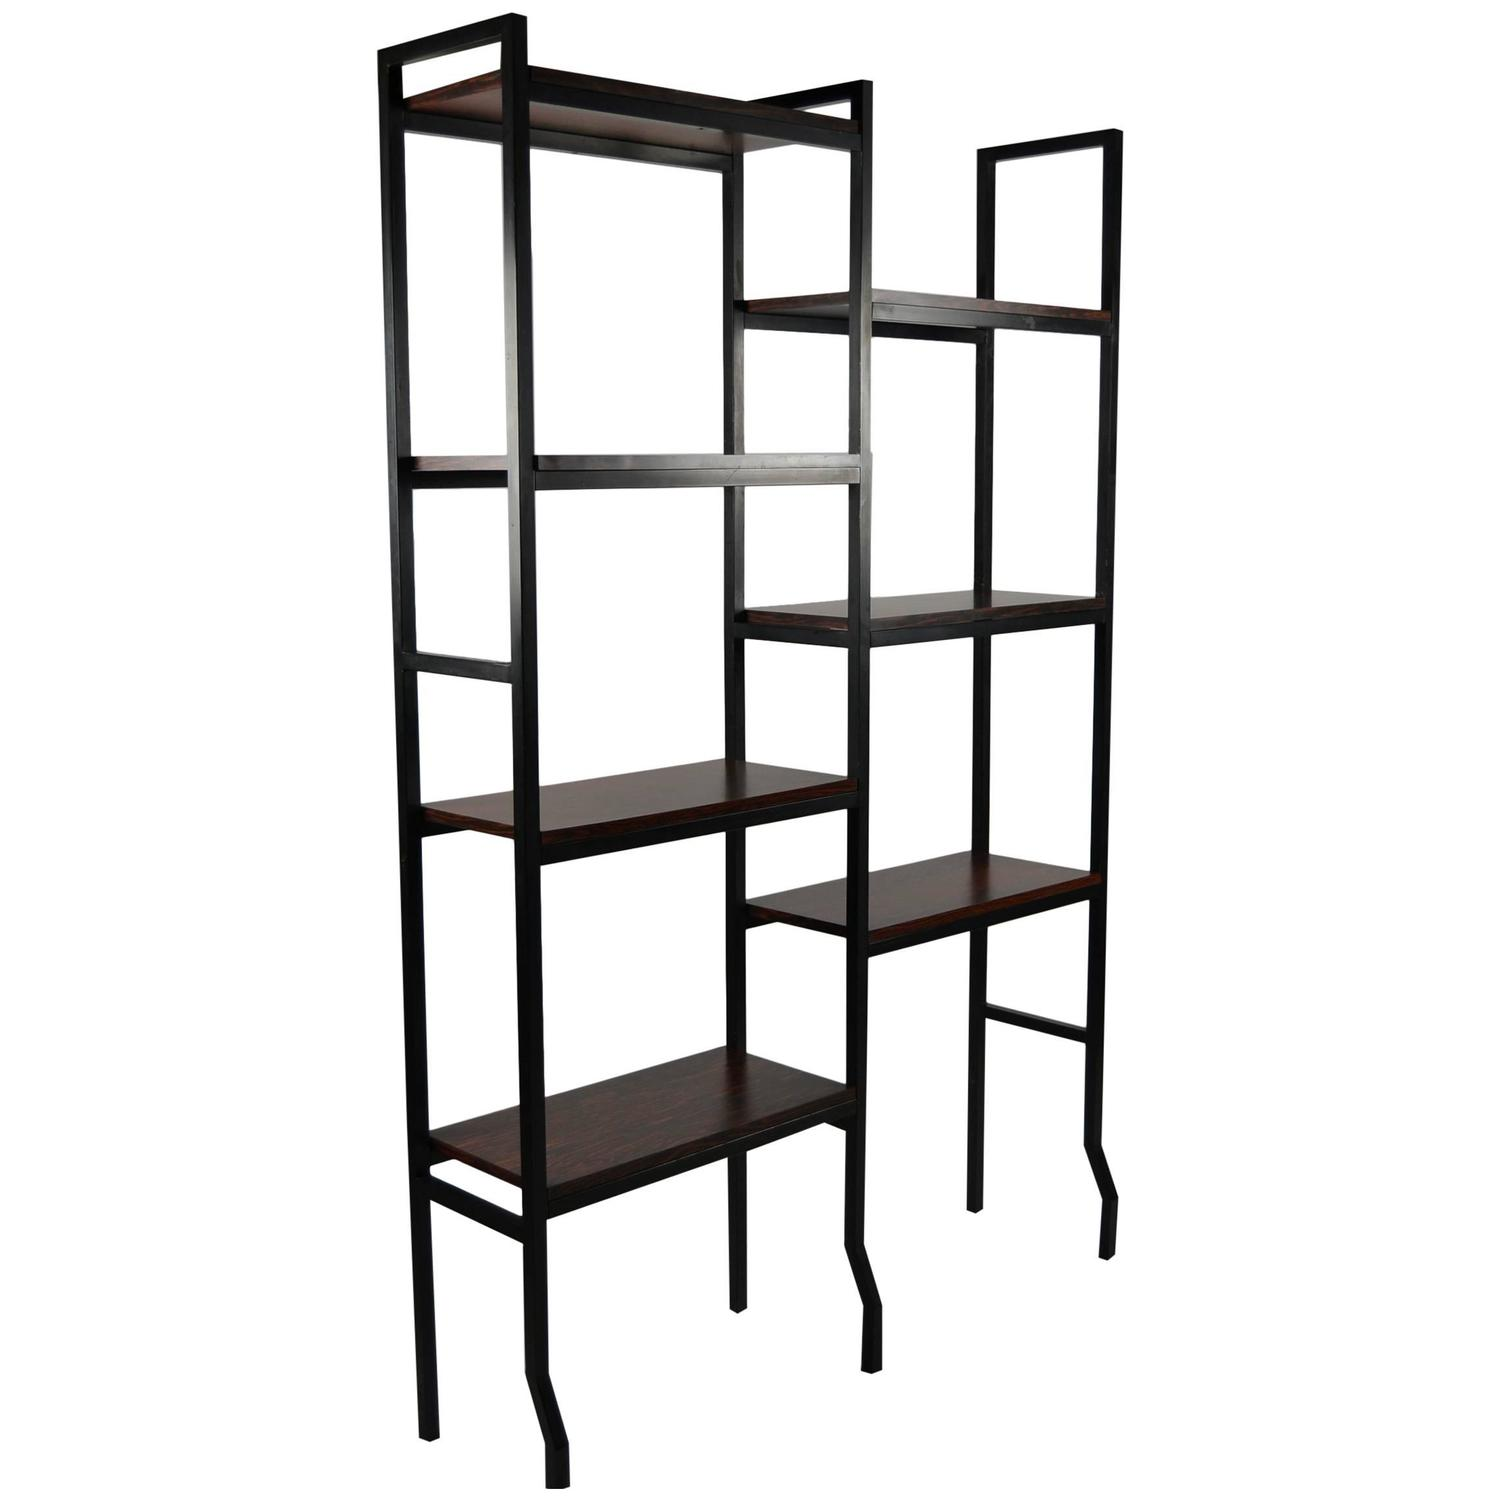 Art deco style room divider with open storage shelves at - Room divider with storage ...